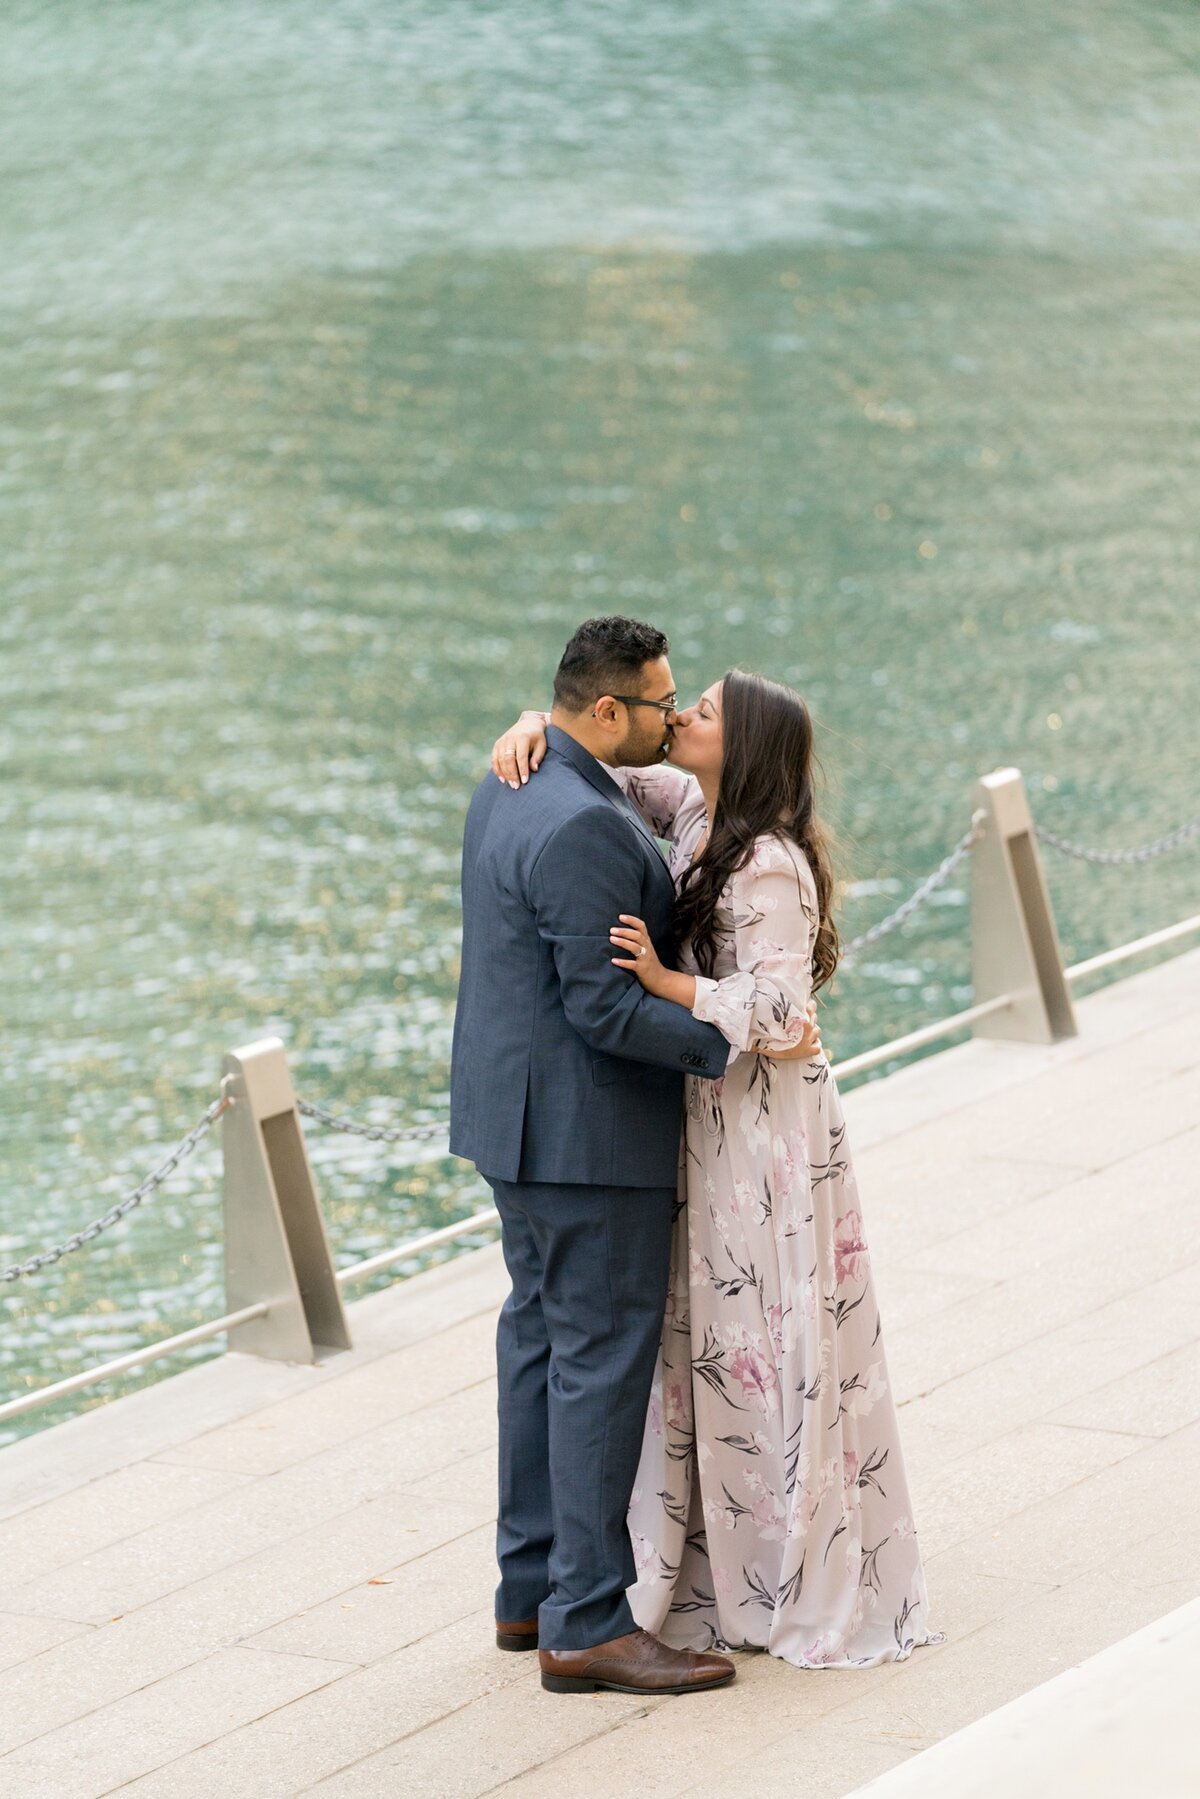 Le Cape Weddings - Chicago Engagement Session - Kinjal and Pratik -24.jpg